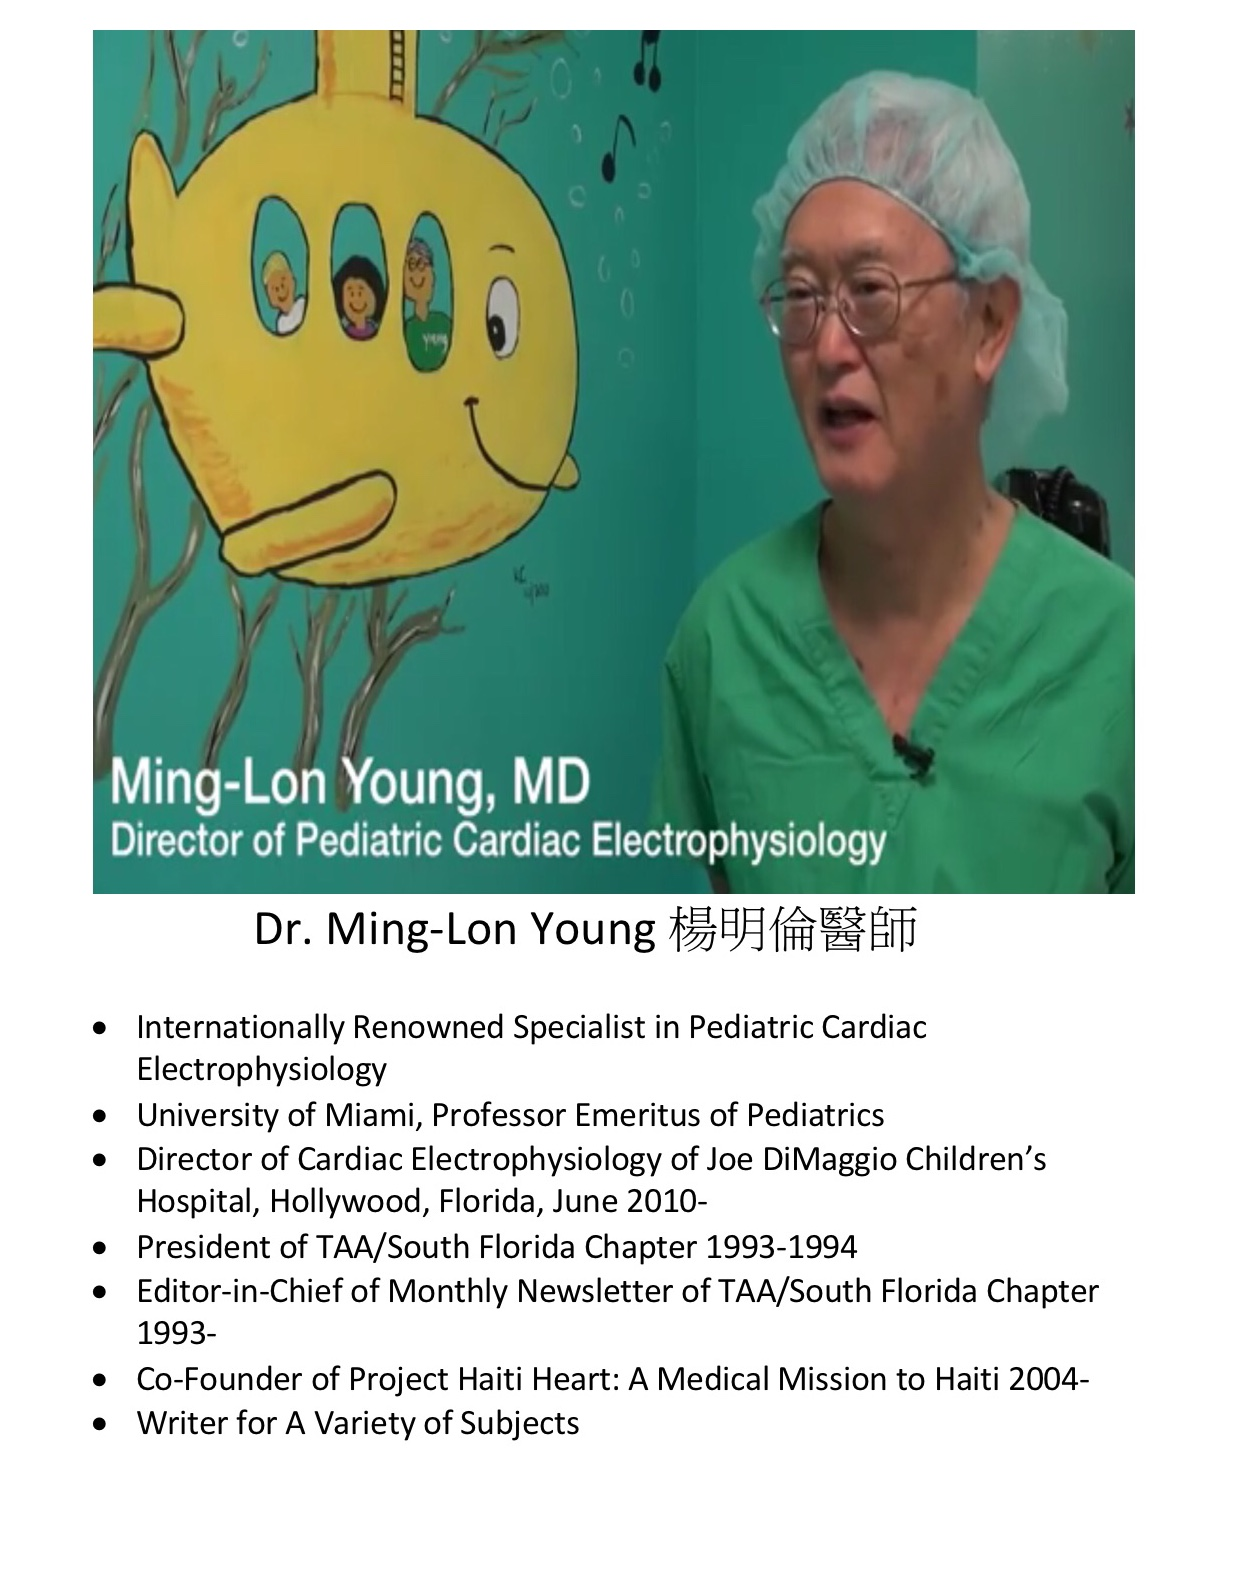 279. Dr. Ming-Lon Young 楊明倫醫師